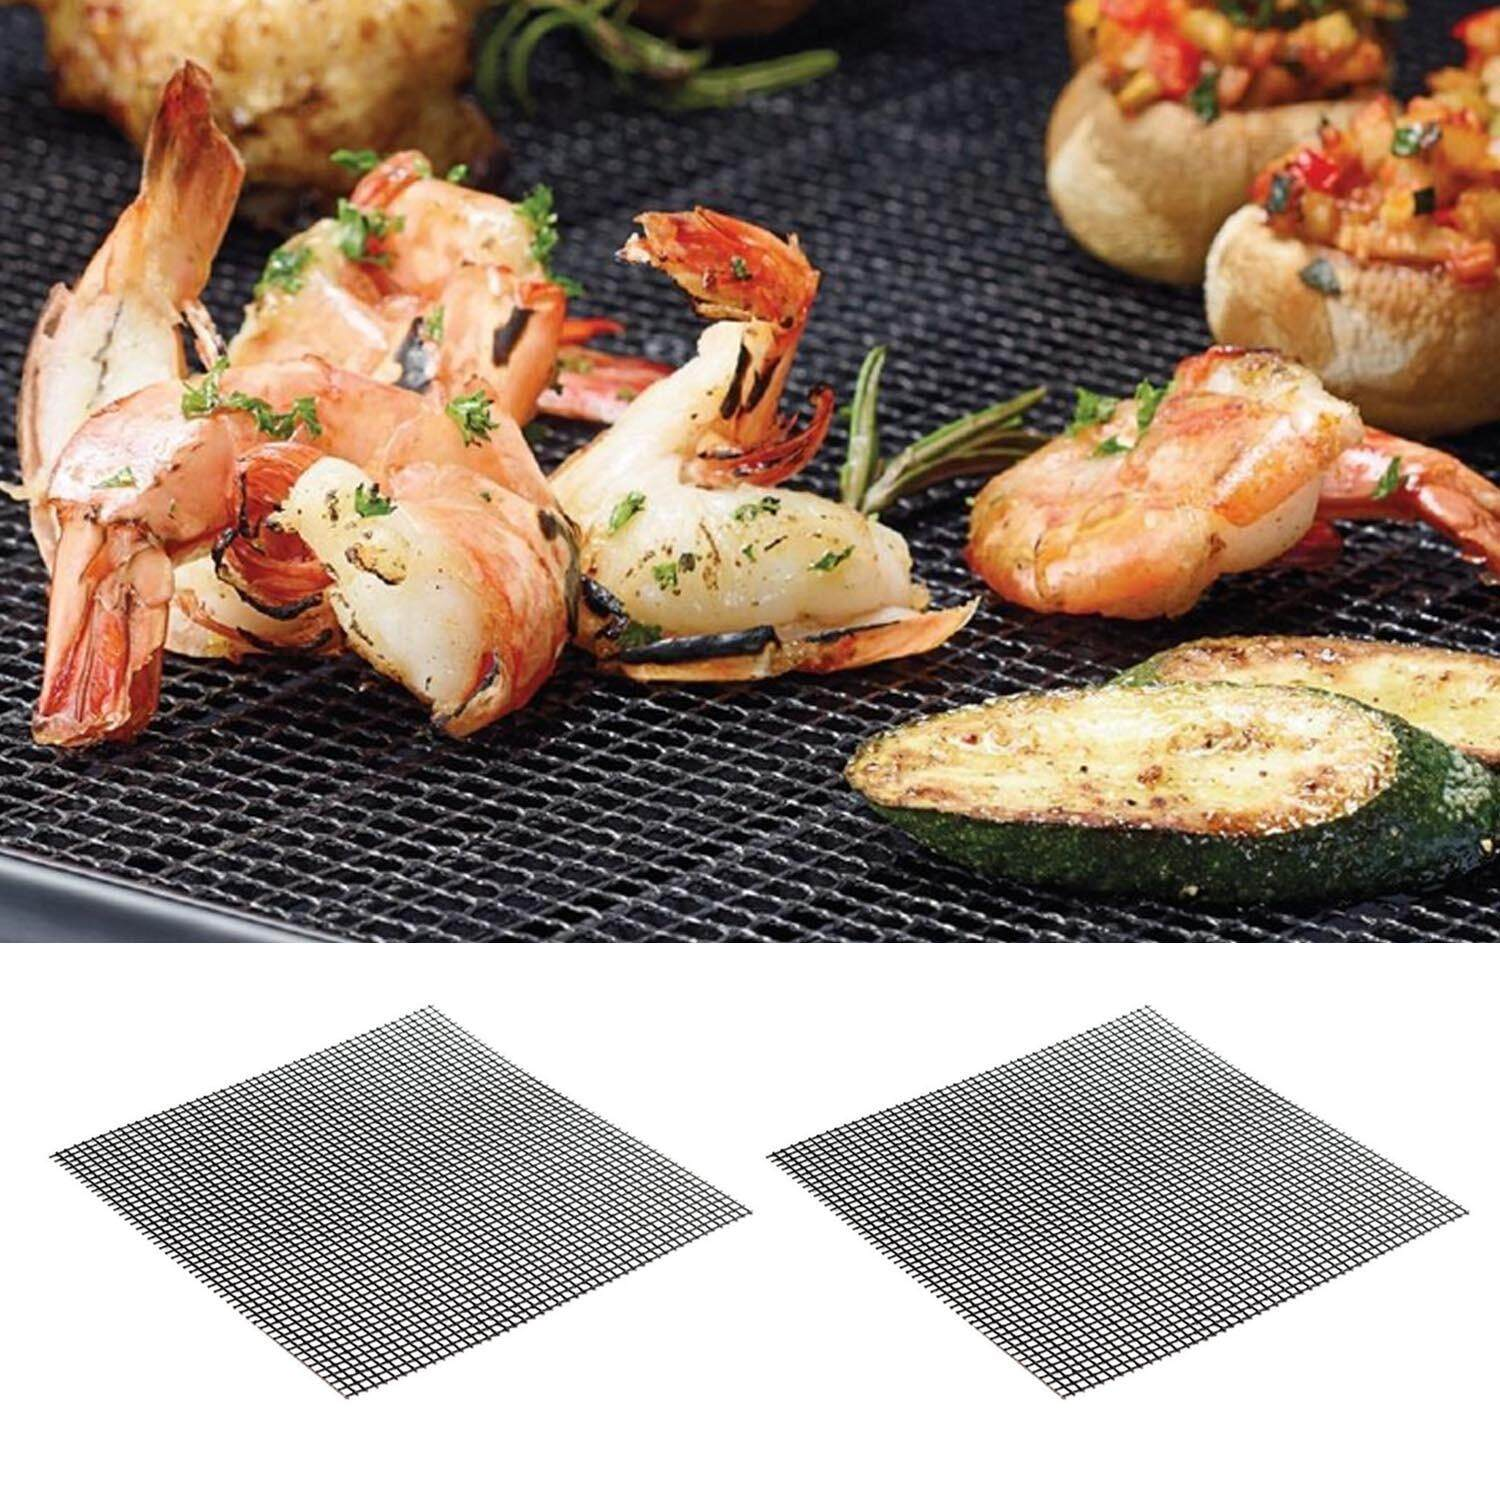 2 PCS 33 x 40cm Teflon Non Stick BBQ Grill Mesh Grilling Net Grid Mat for Oven Microwave Charcoal Barbecue